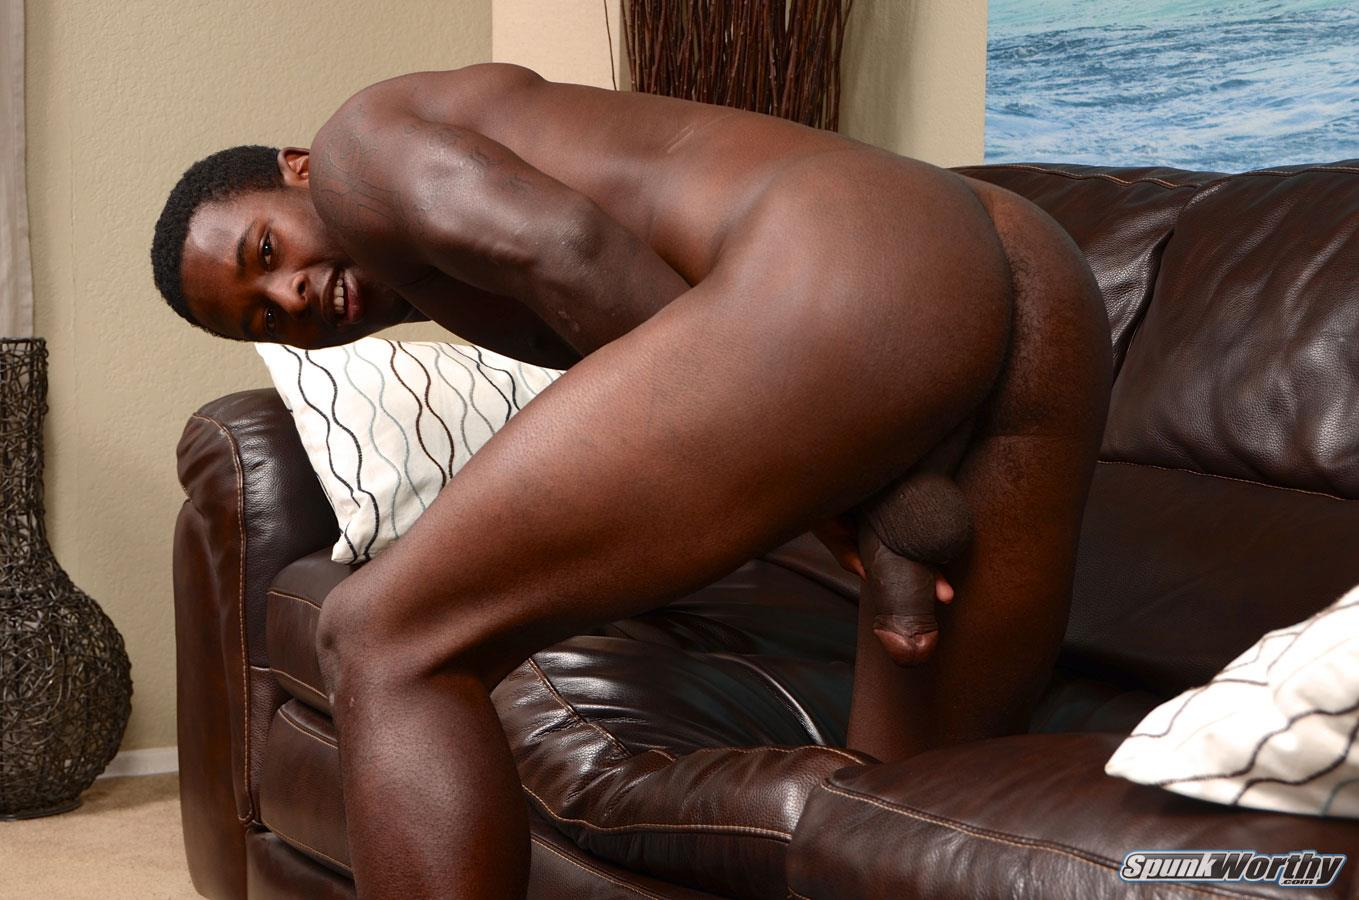 Naked pics of big black dicks